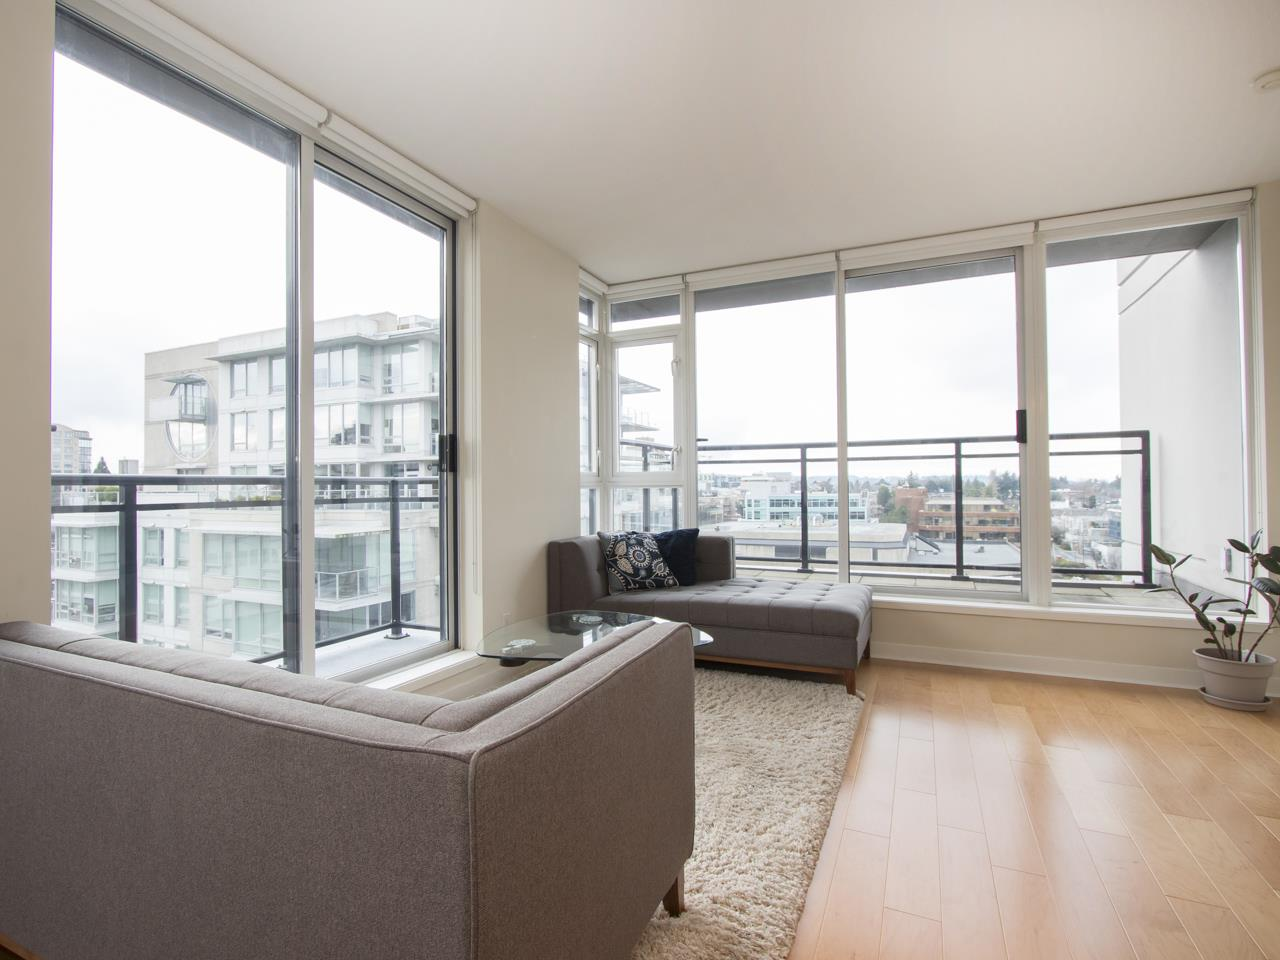 Main Photo: 1002 1650 W 7TH AVENUE in Vancouver: Fairview VW Condo for sale (Vancouver West)  : MLS®# R2022214